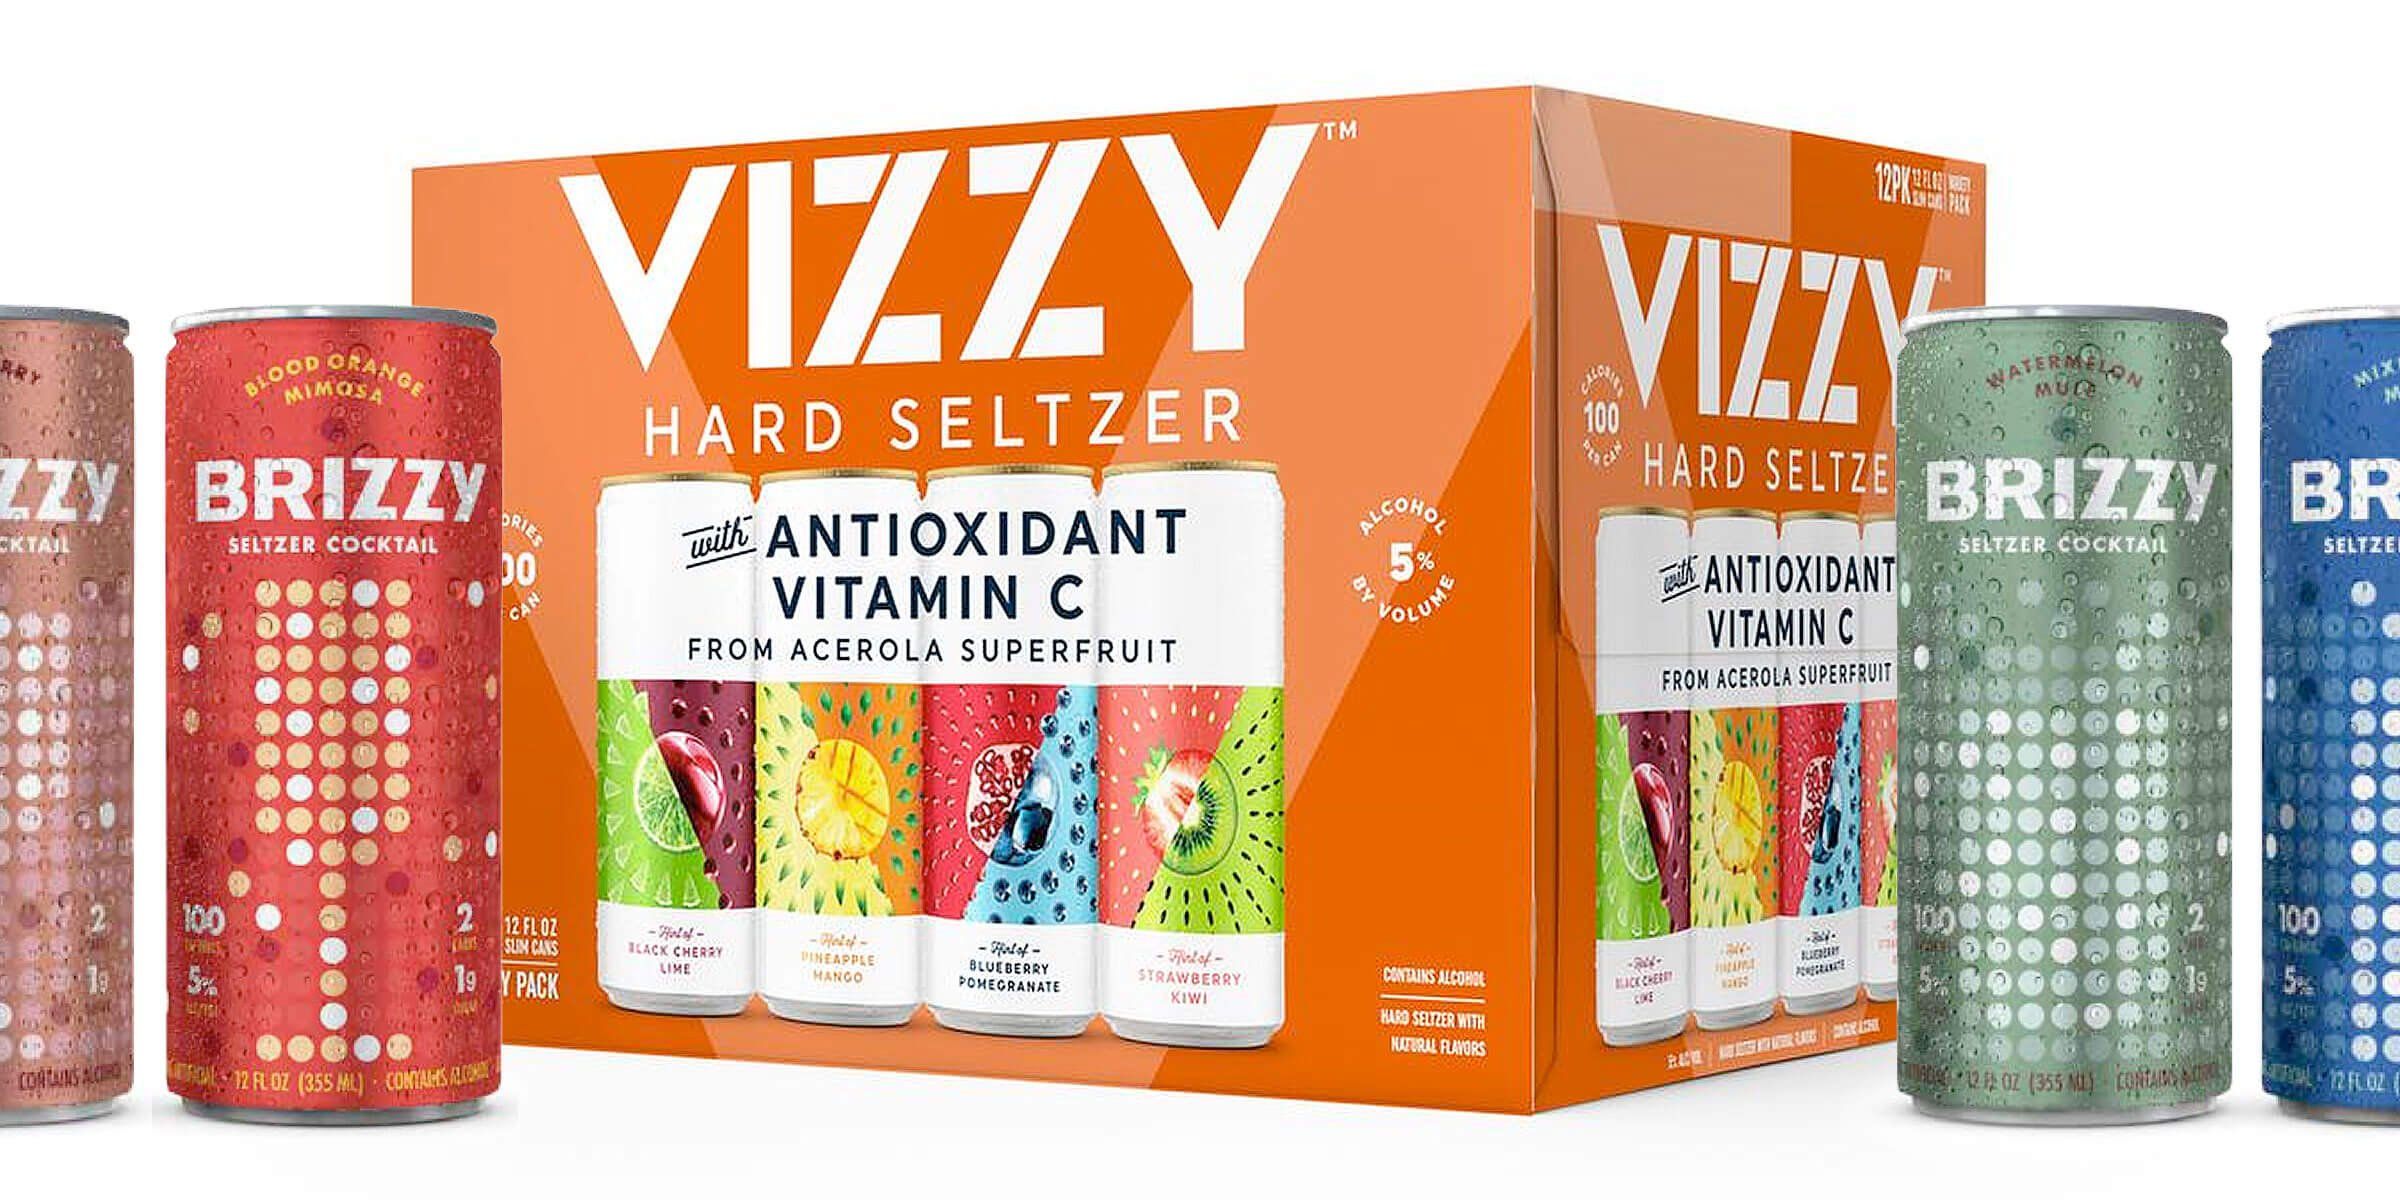 The parent company of Brizzy Seltzer Cocktails is suing Molson Coors Beverage Company, alleging they're infringing upon their brand with Vizzy Hard Seltzer.